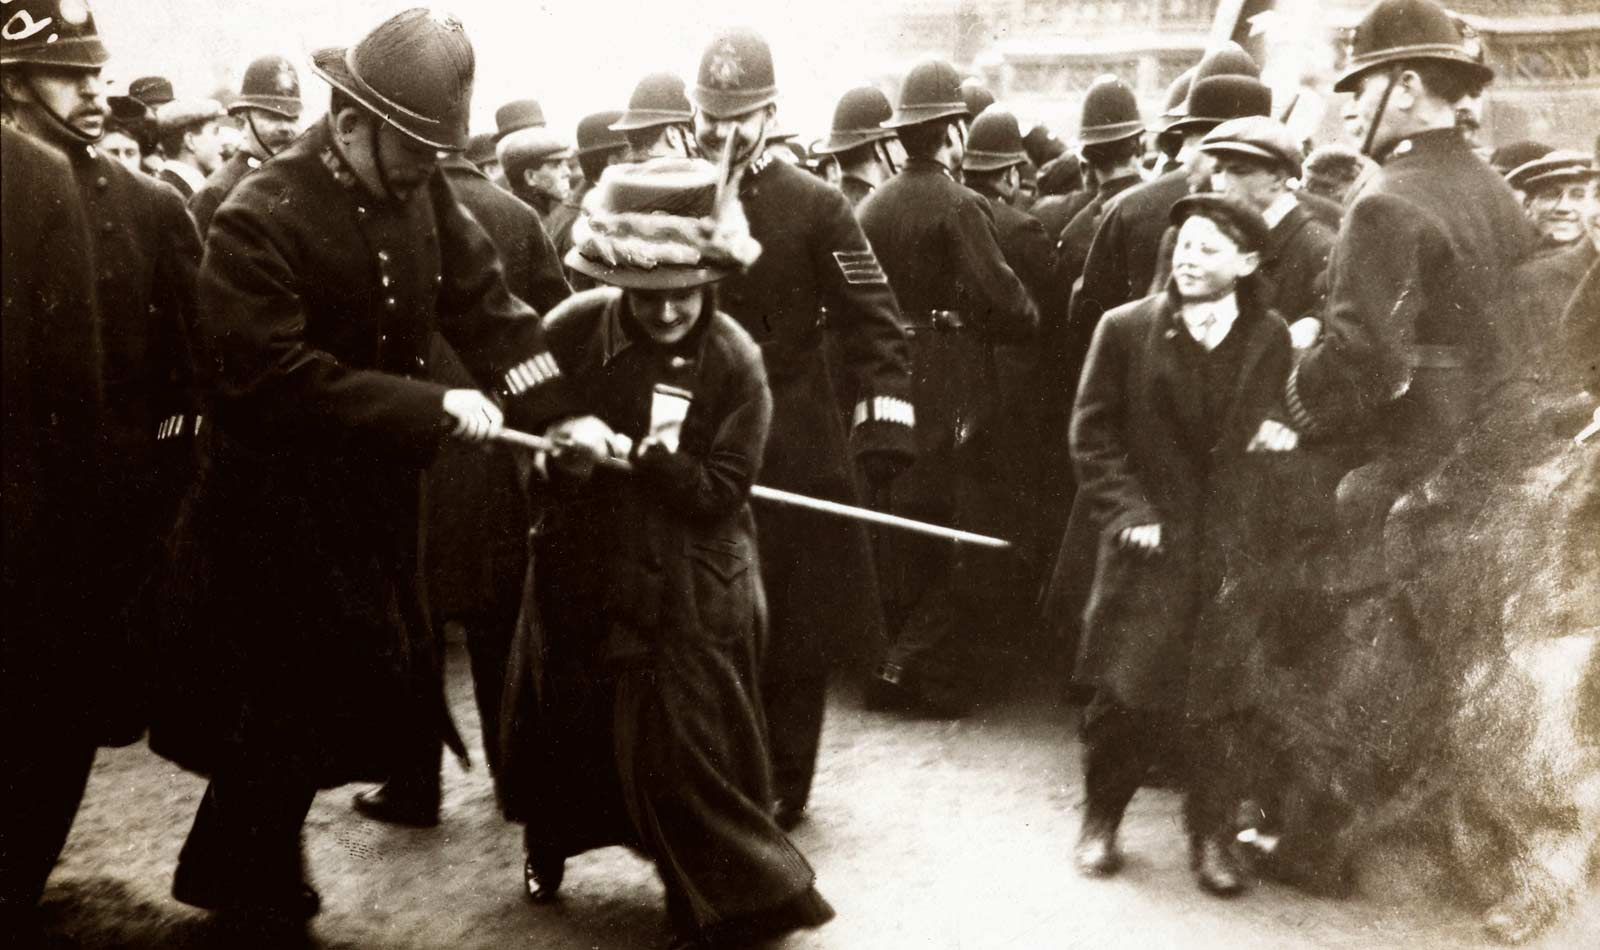 A Suffragette struggling with a policeman on Black Friday 18 November 1910. Furious suffragettes marched on the House of Commons in response to delays to the Conciliation Bill. The resulting riot ended in the arrest of 115 women and four men. Many of the protestors suffered violence, intimidation and even acts of indecency at the hands of the police. One suffragette noted 'Several times constables and plain-clothes men who were in the crowds passed their arms round me from the back and clutched hold of my breasts in as public a manner as possible, and men in the crowd followed their example...My skirt was lifted up as high as possible, and the constable attempted to lift me off the ground by raising his knee. This he could not do, so he threw me into the crowd and incited the men to treat me as they wished'.  < ...Read more